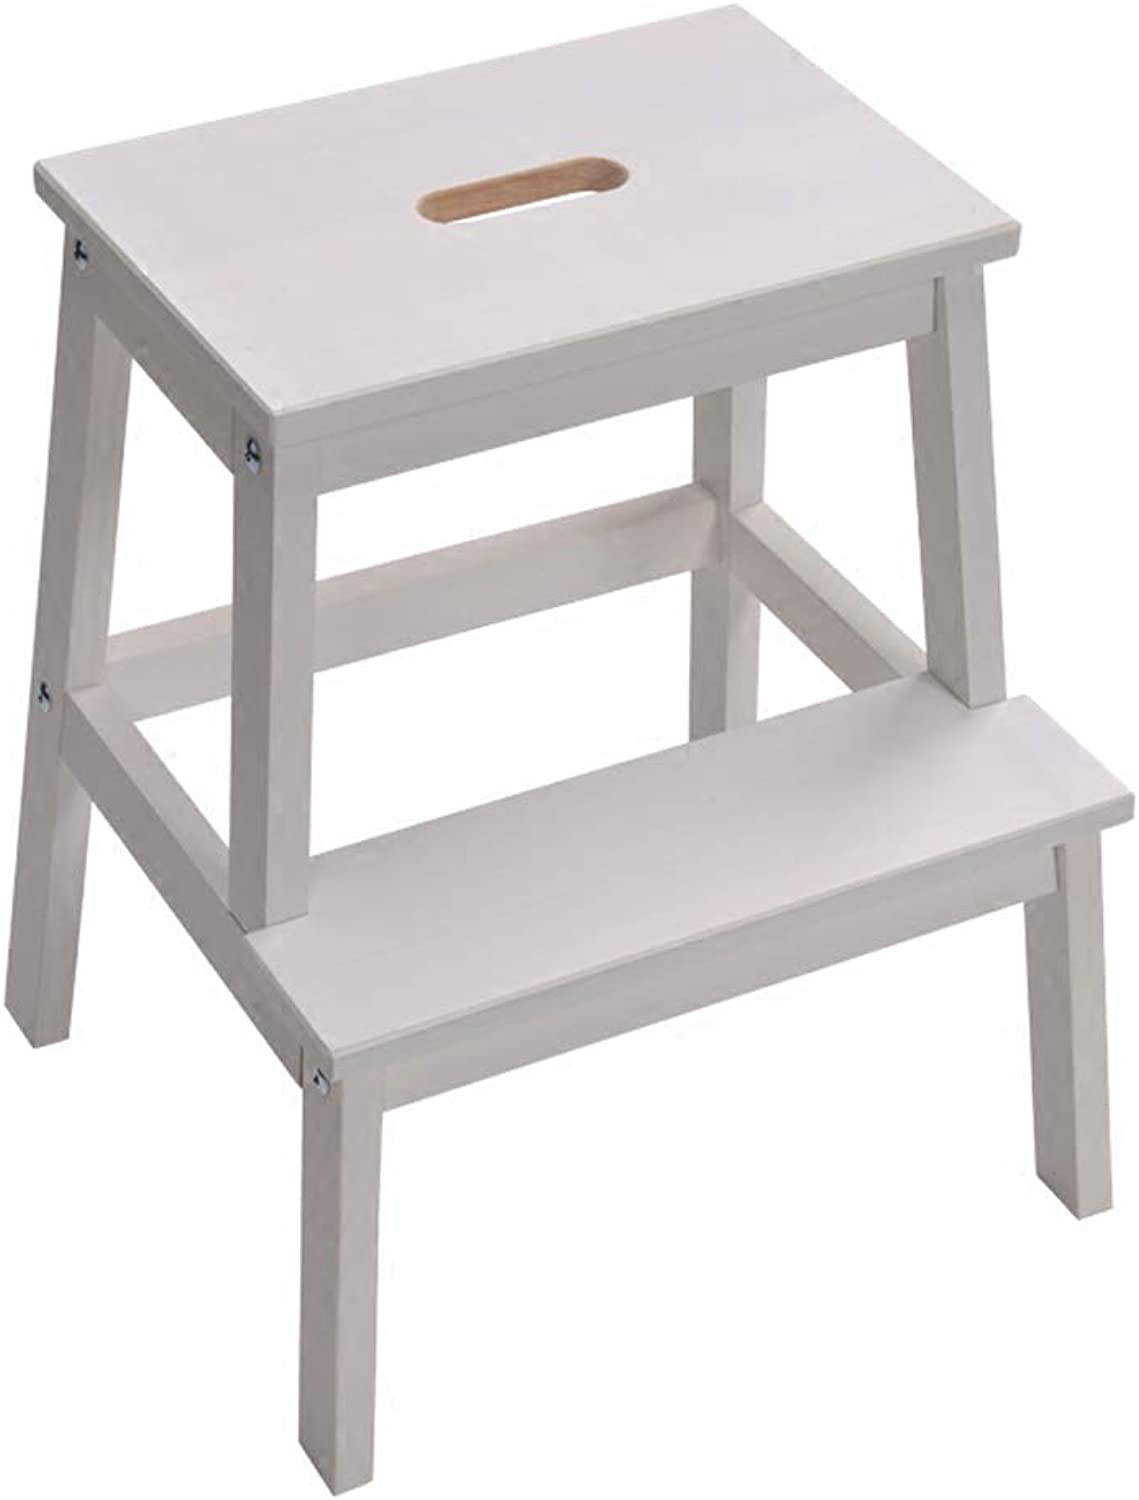 WFFXLL Step Stool Solid Wood Ladder Home shoes Stool High Stool Step Stool (color   White)